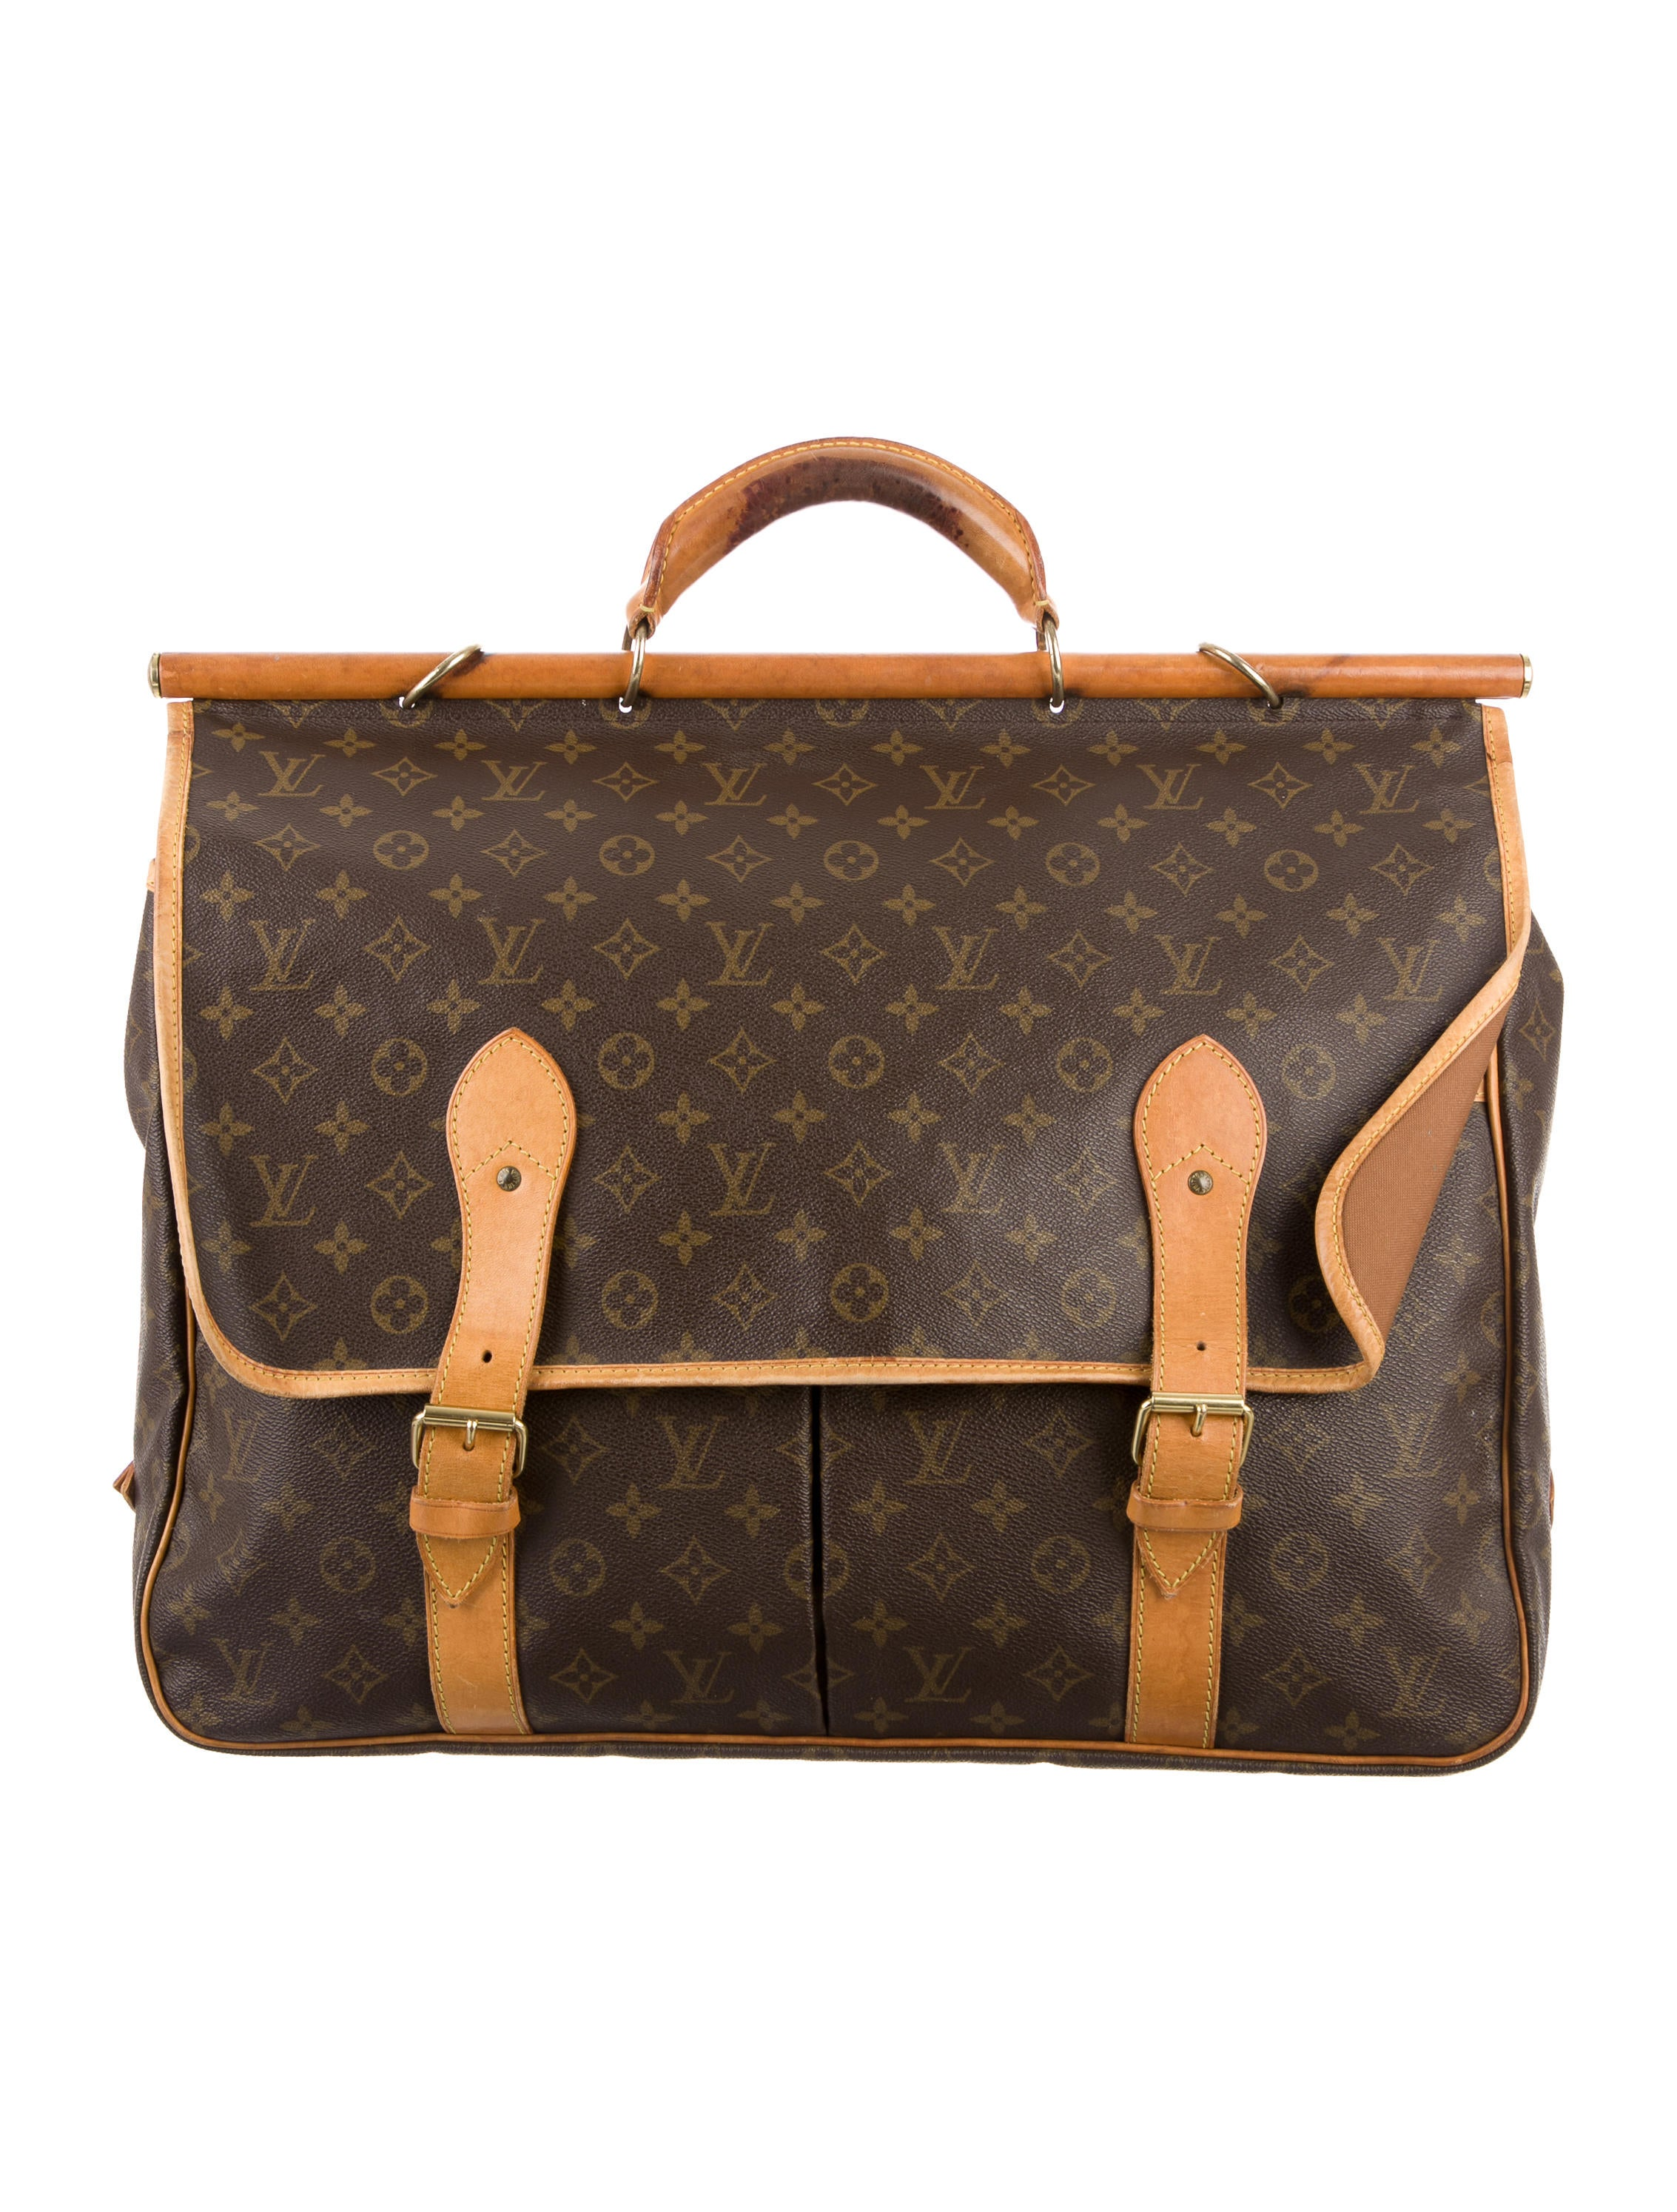 Sac louis vuitton imitation : Louis vuitton sac chasse handbags lou the realreal